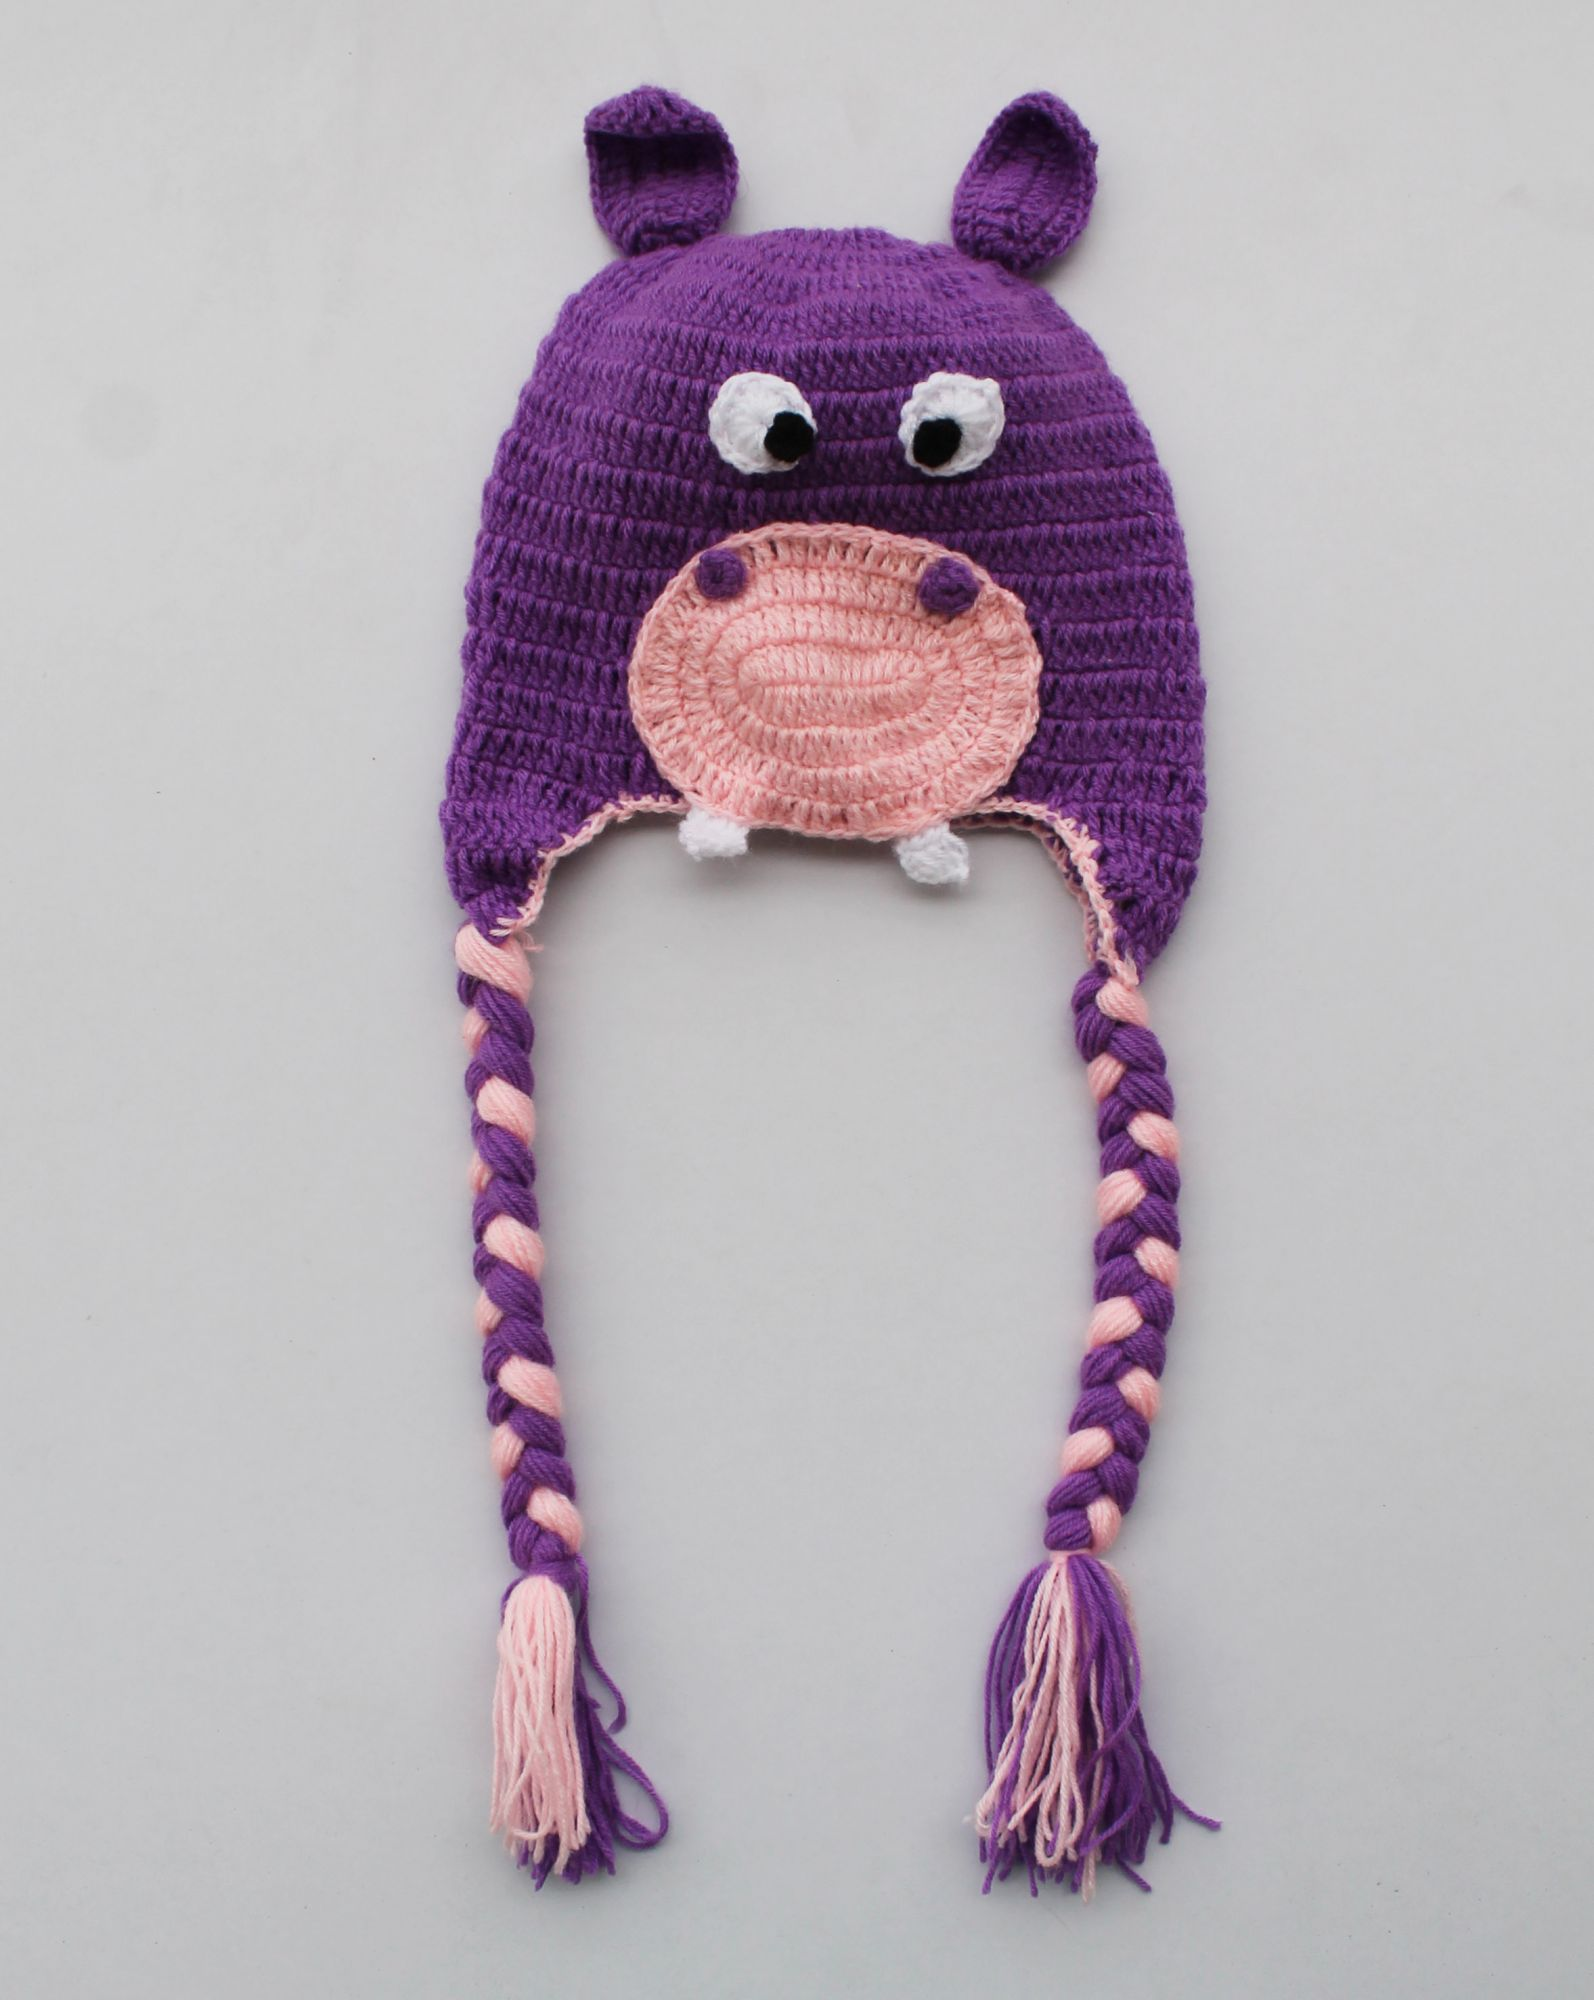 Handmade Crochet Hippo Pattern Winter Cap for Kids - Purple | Woonie